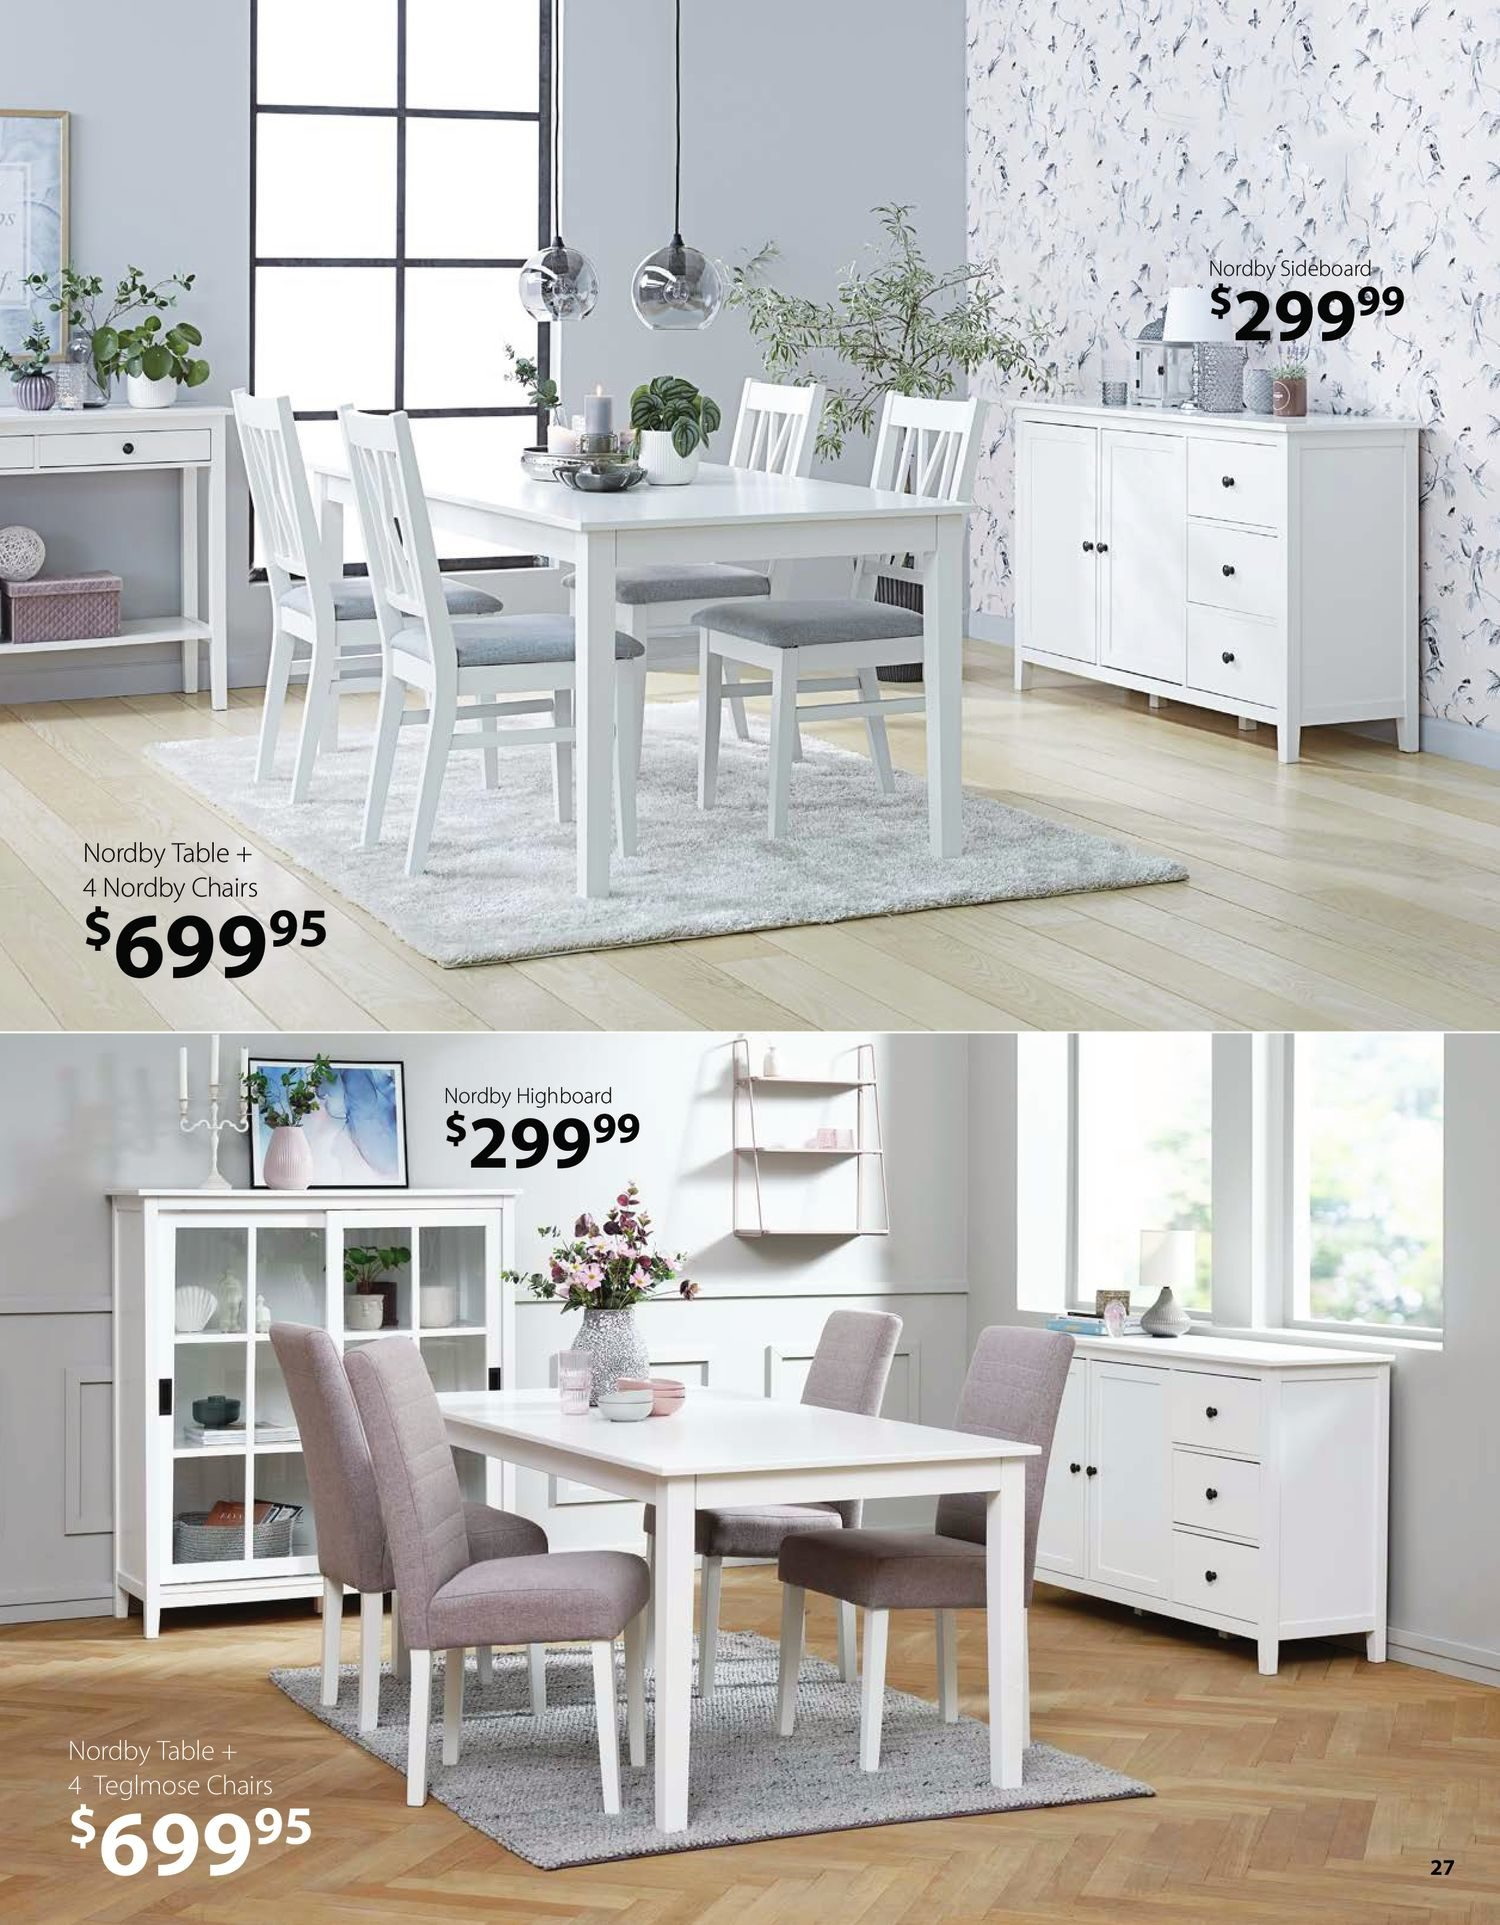 Jysk - Furniture Catalogue - Be Inspired - Page 27